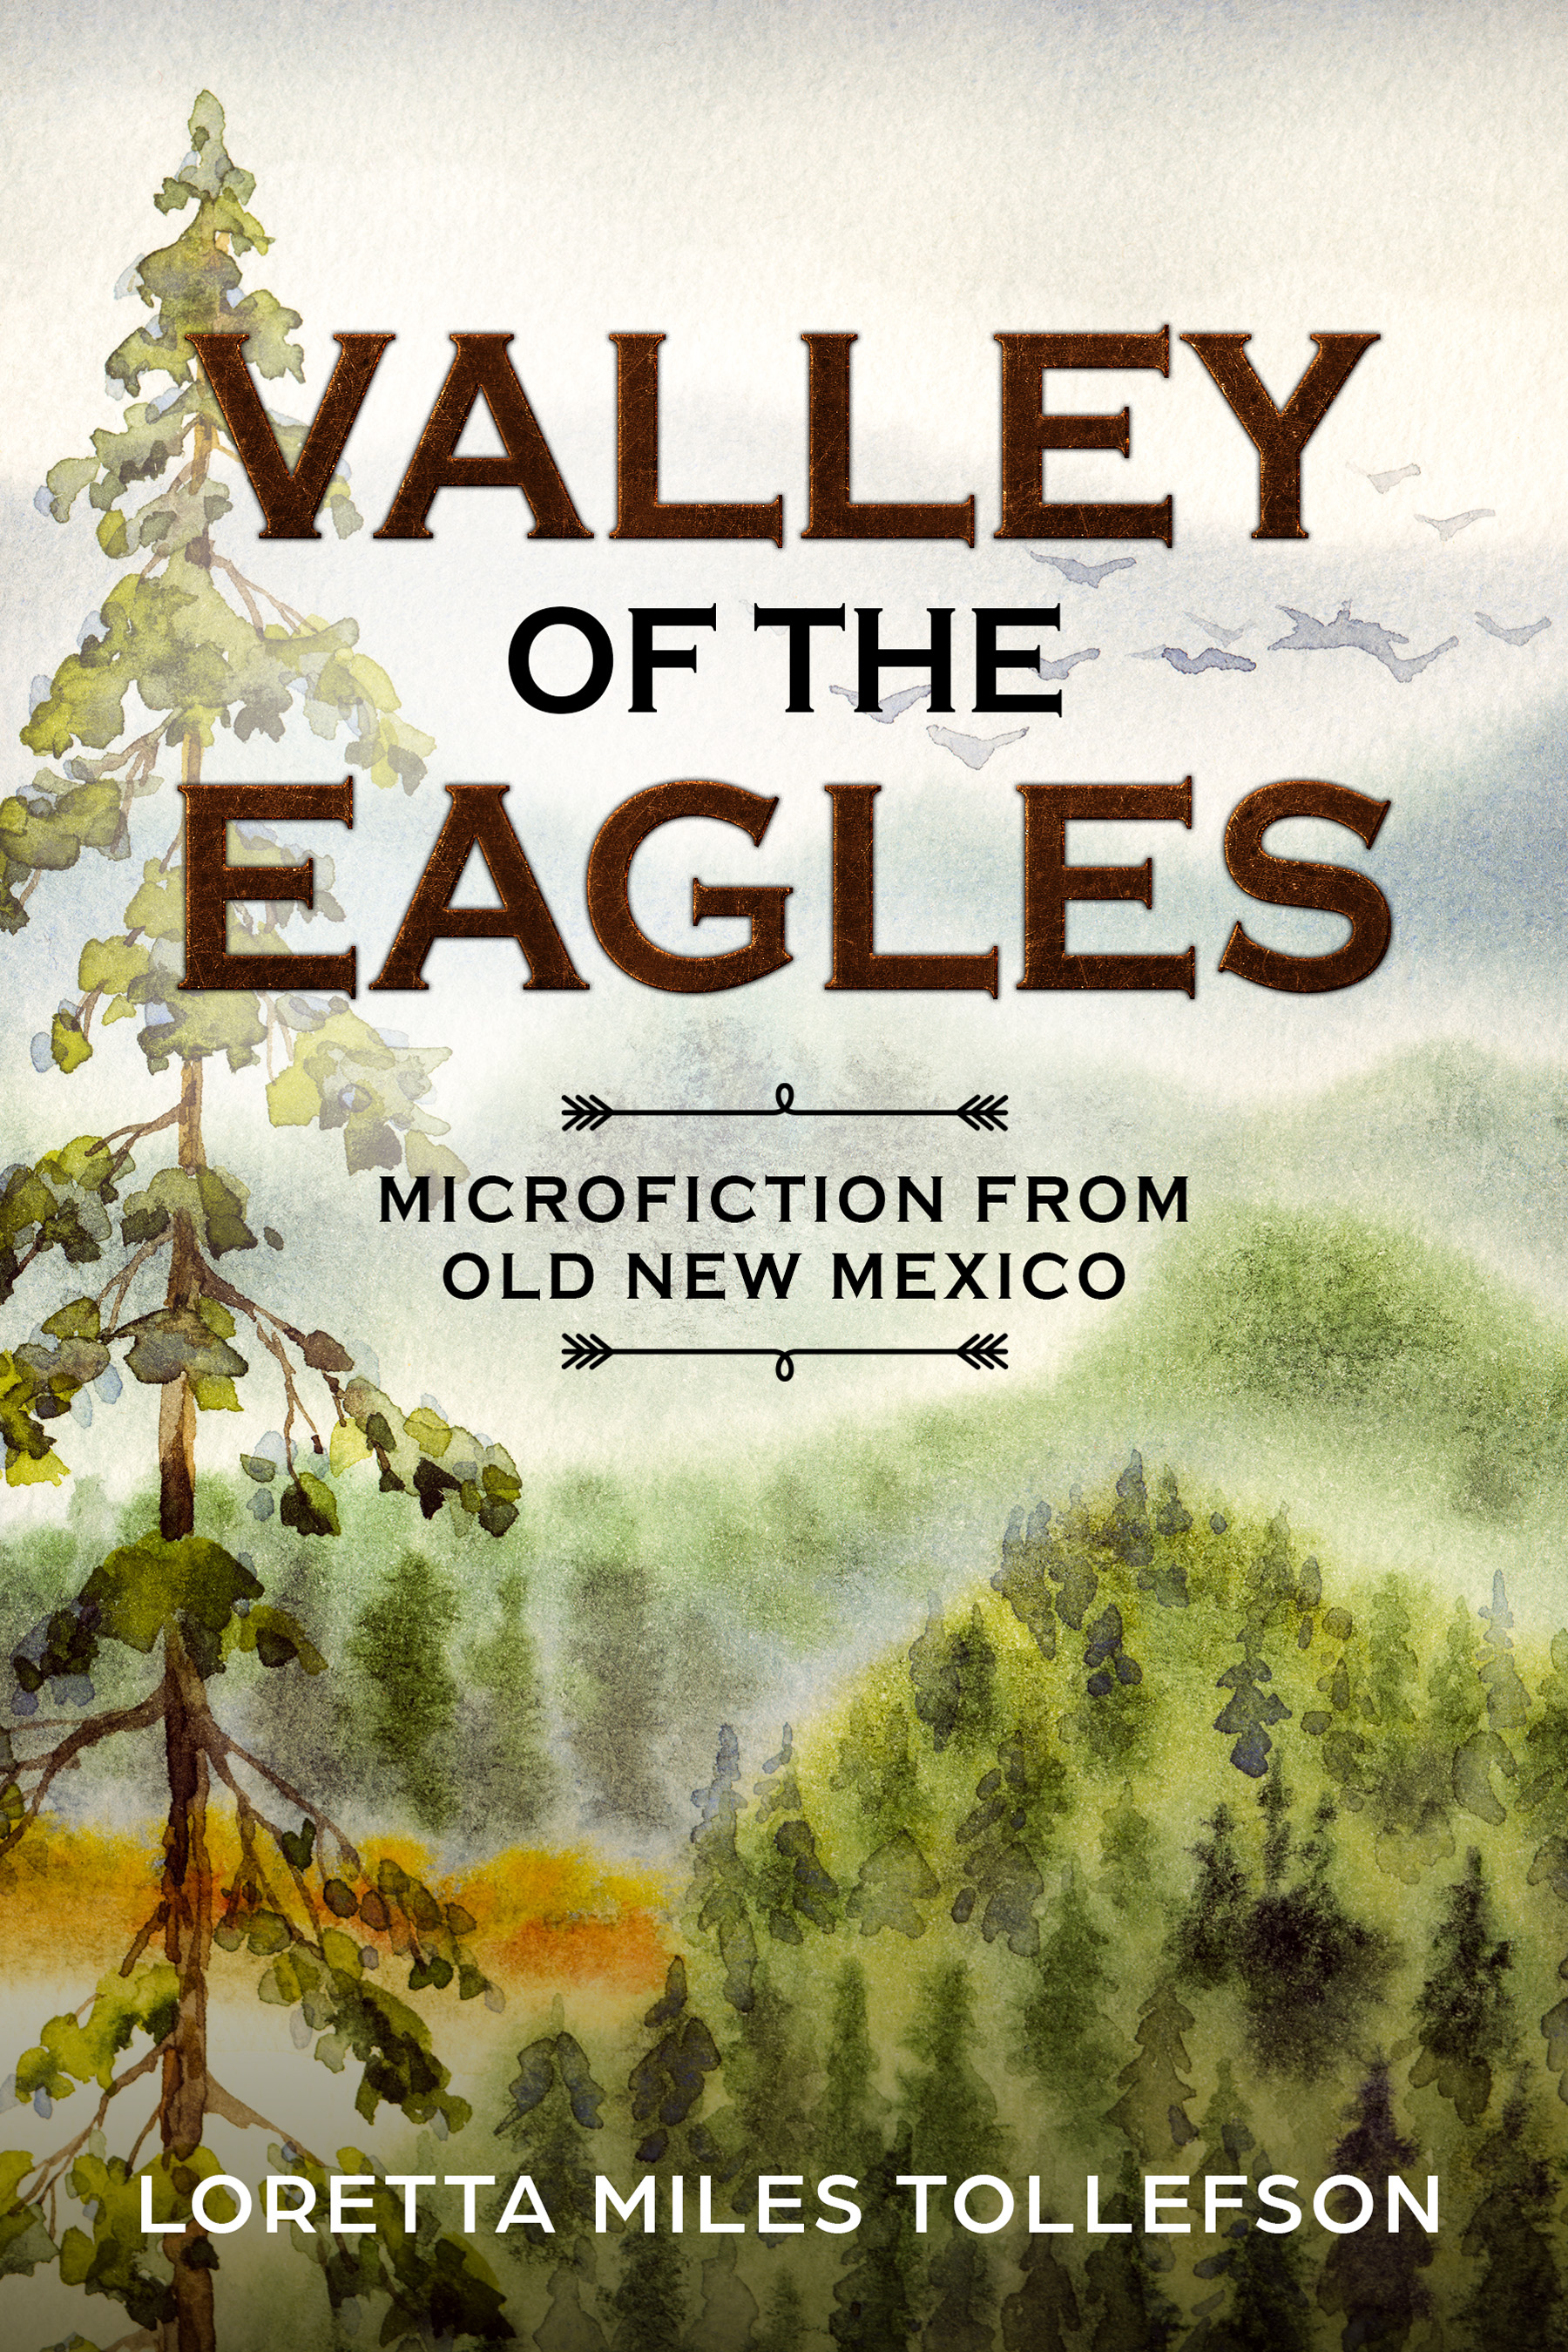 Valley ebook cover reprise.final